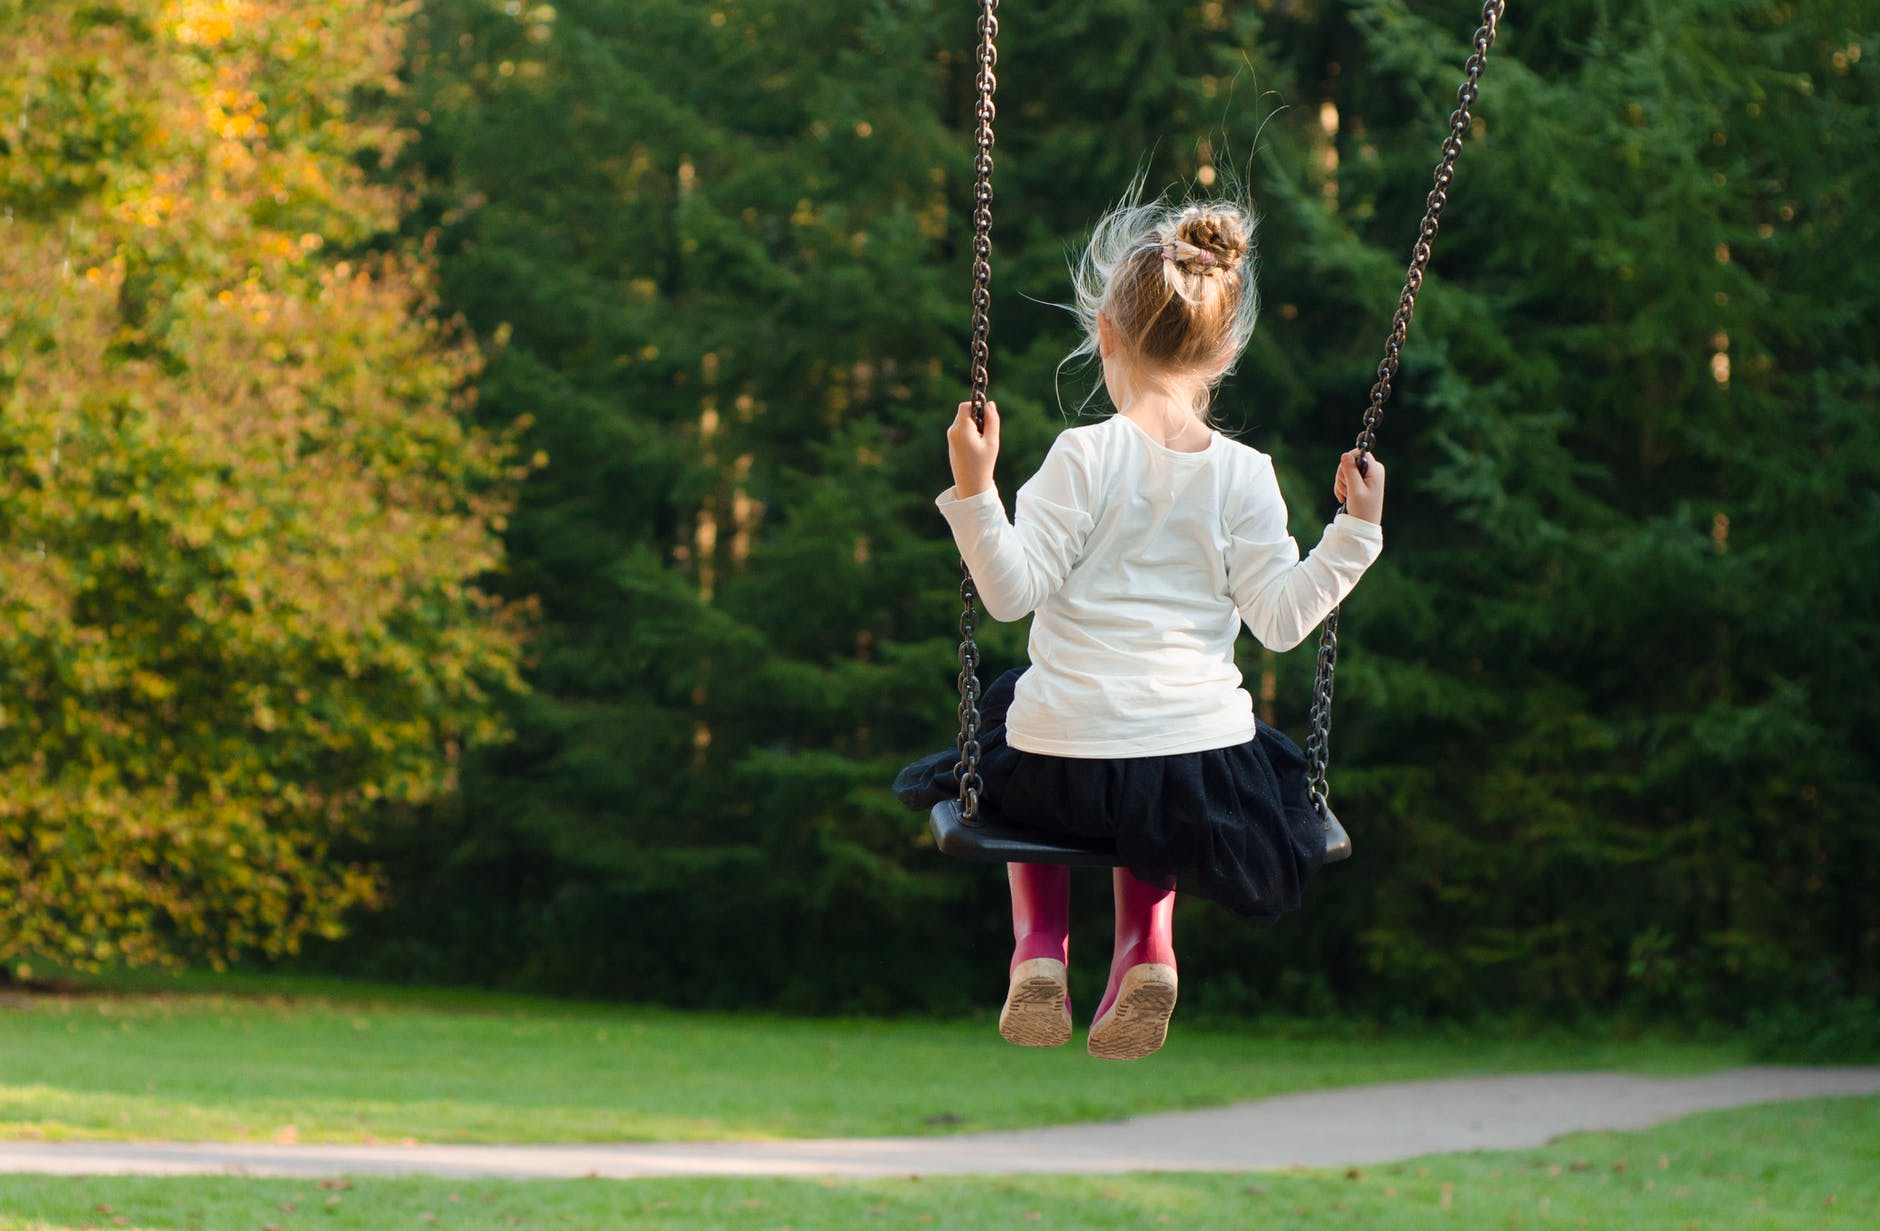 A little girl is swinging on a swing set in a park looking towards the trees.